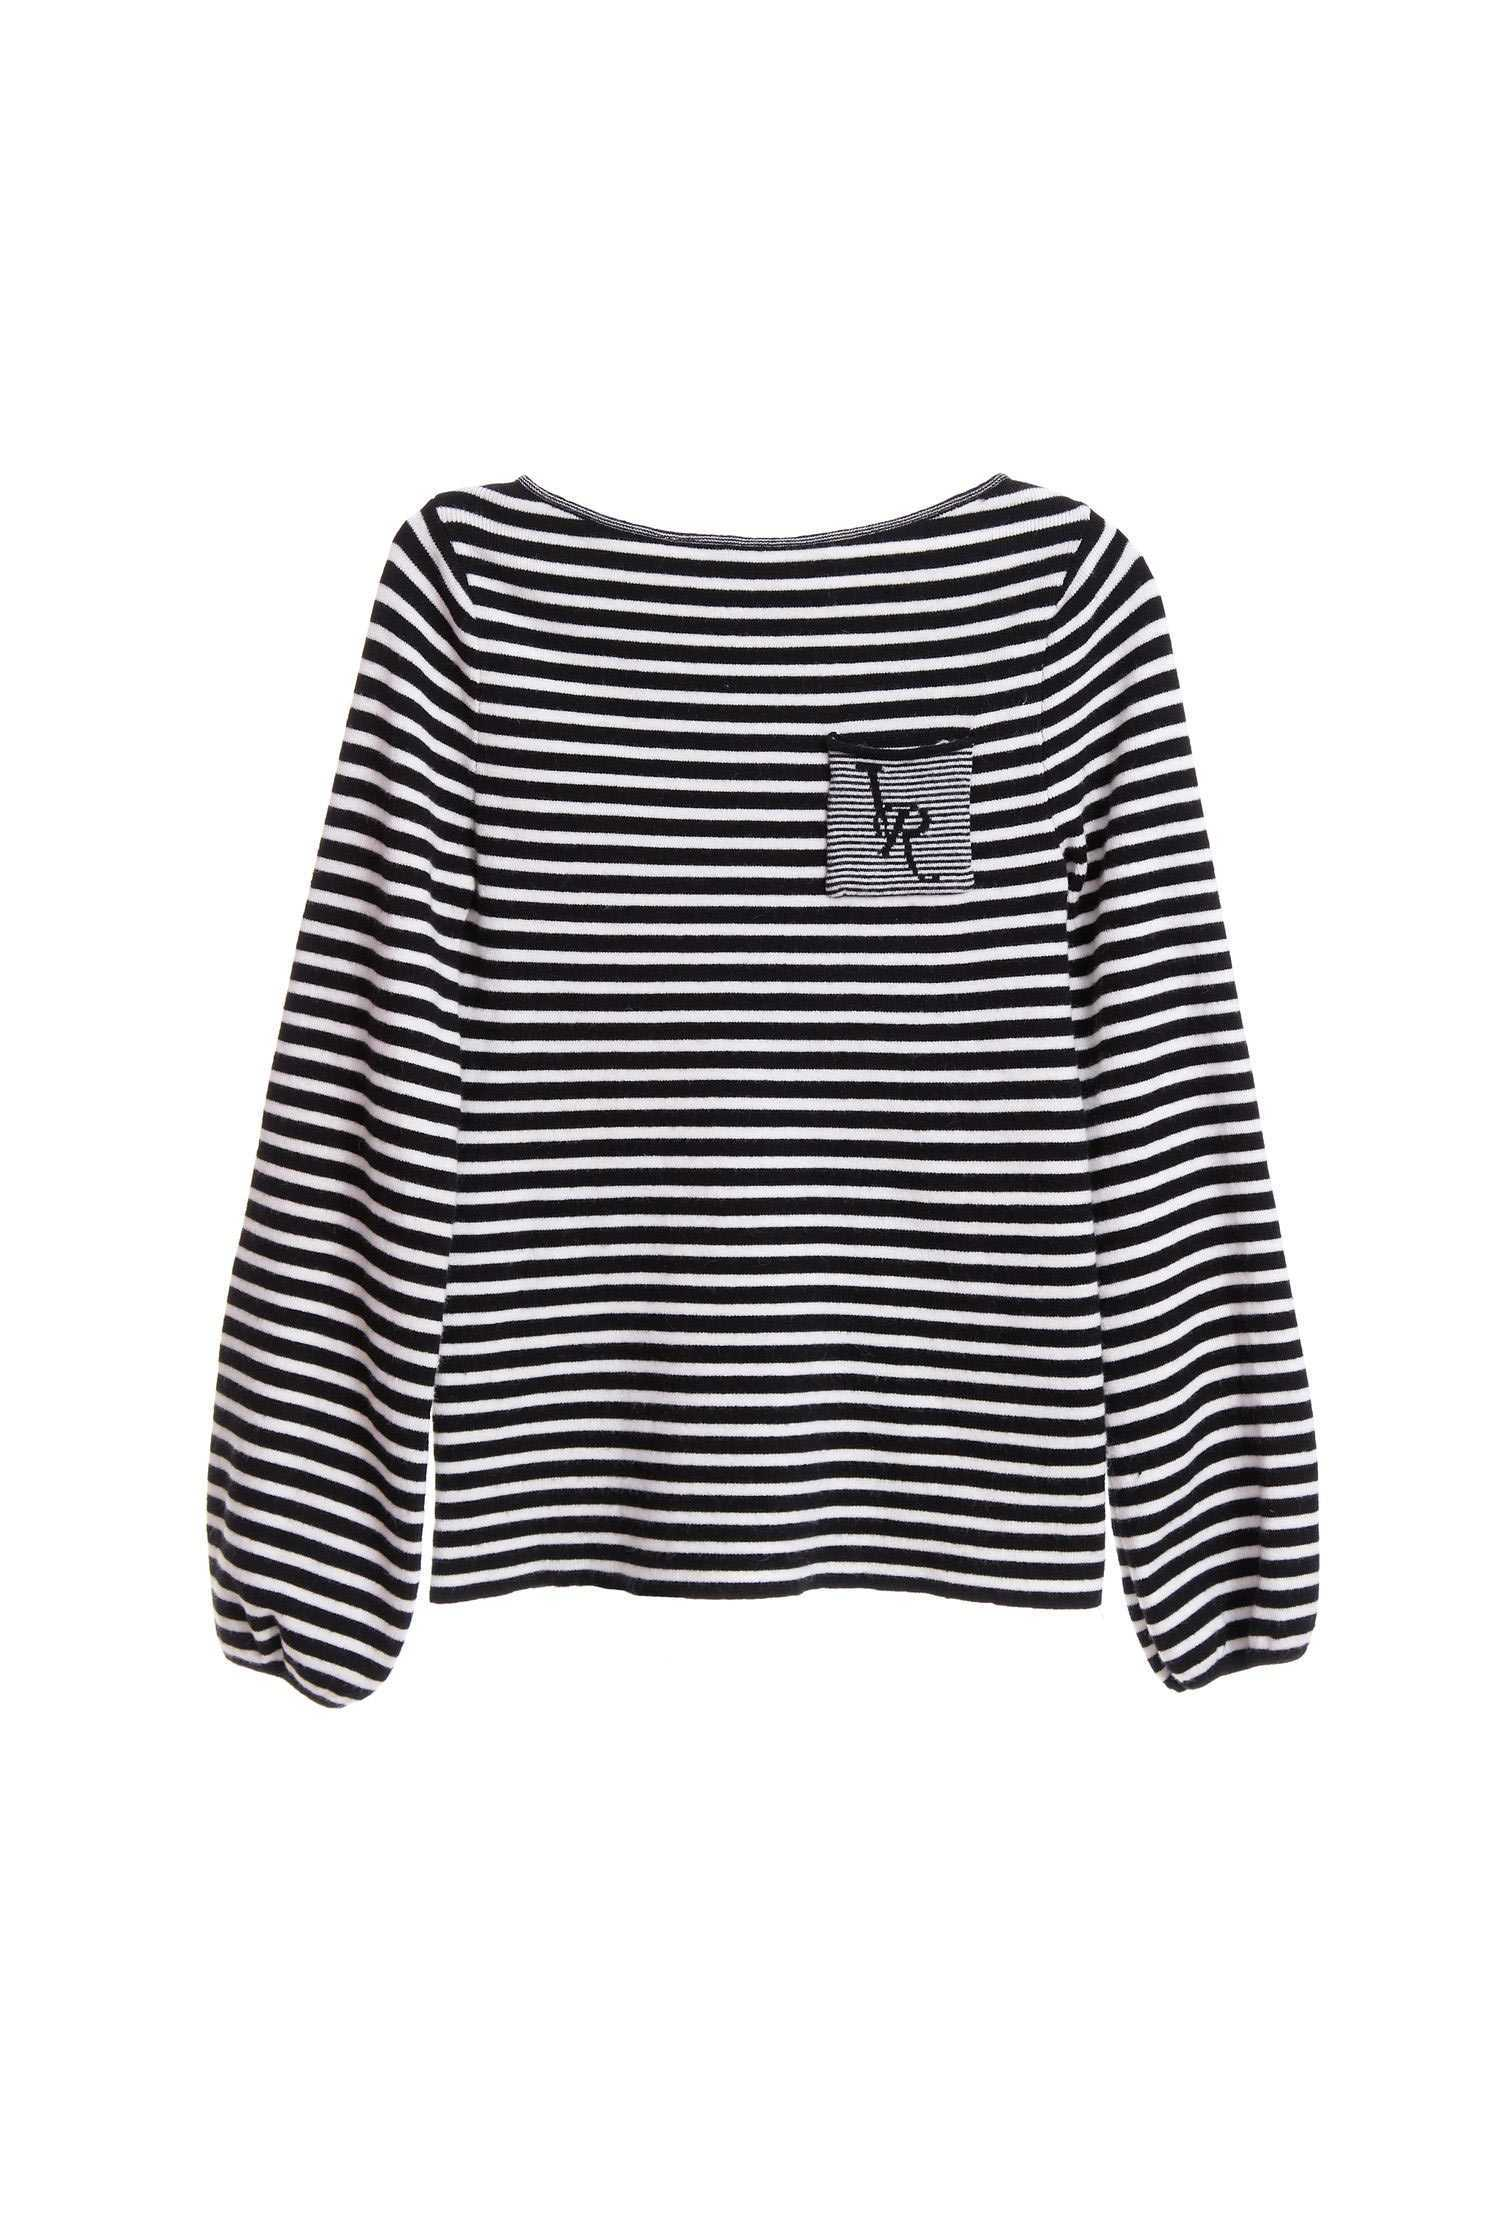 Black/white thin stripes knitting top